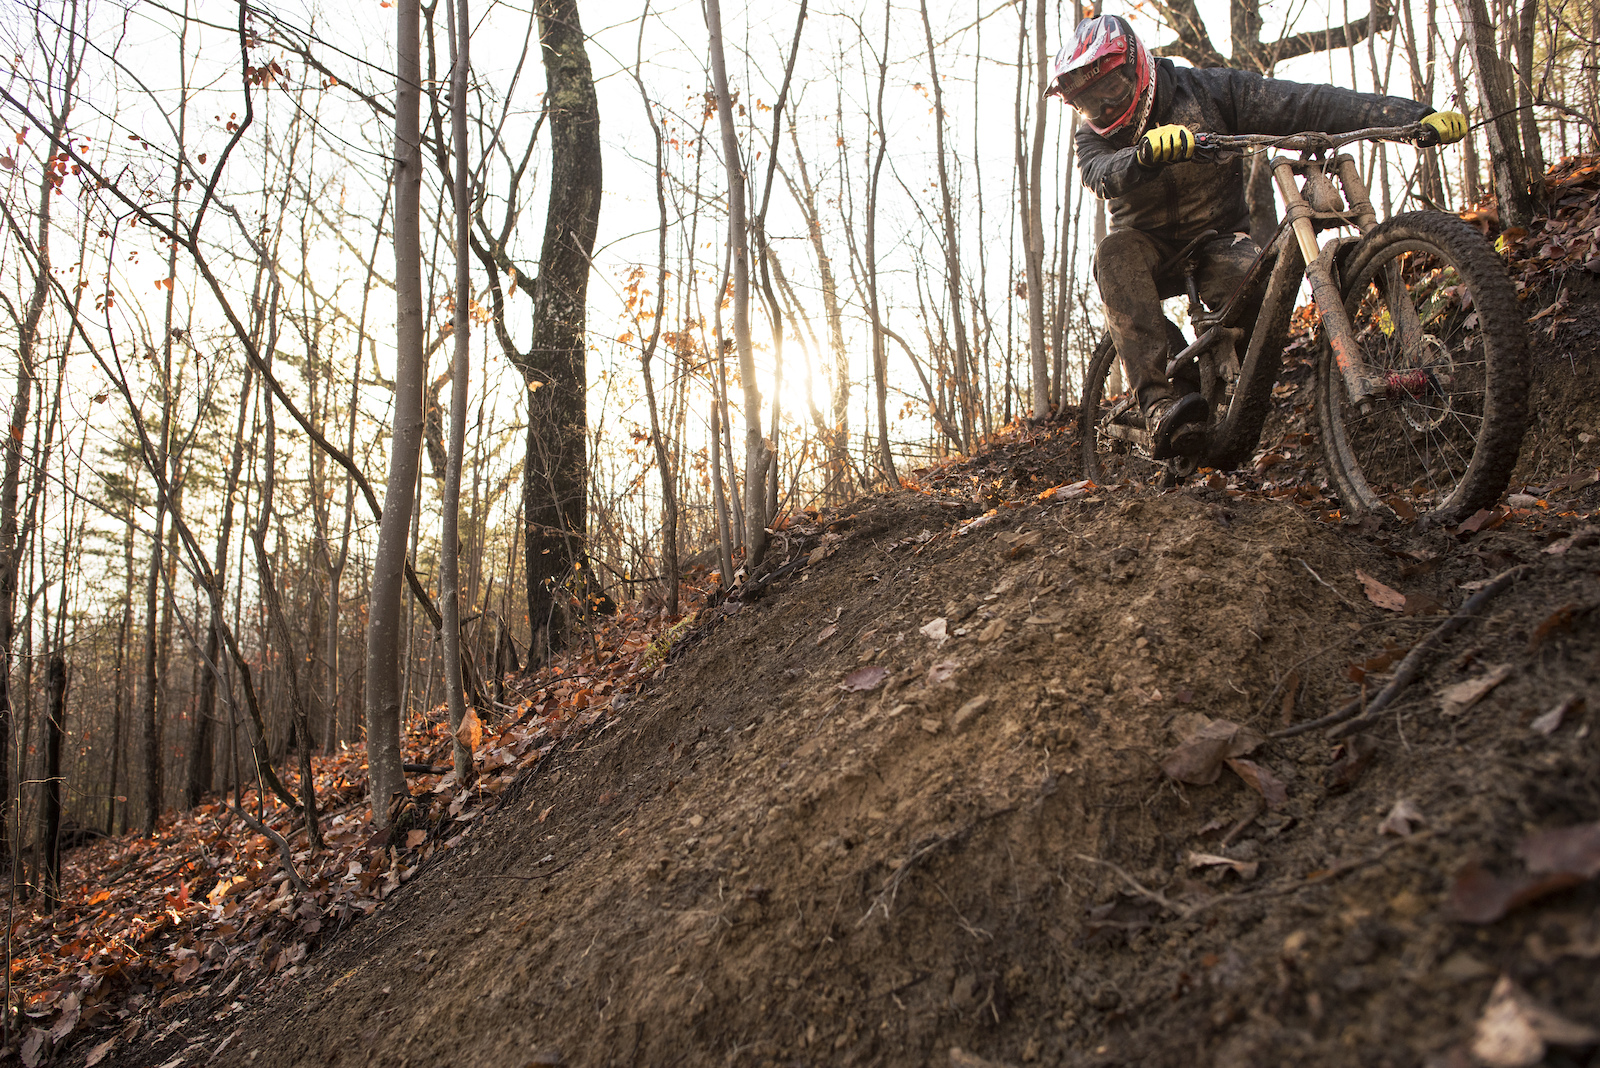 1da62720204 Pro GRT Set to Get Wild in Tennessee - Course Preview - Pinkbike